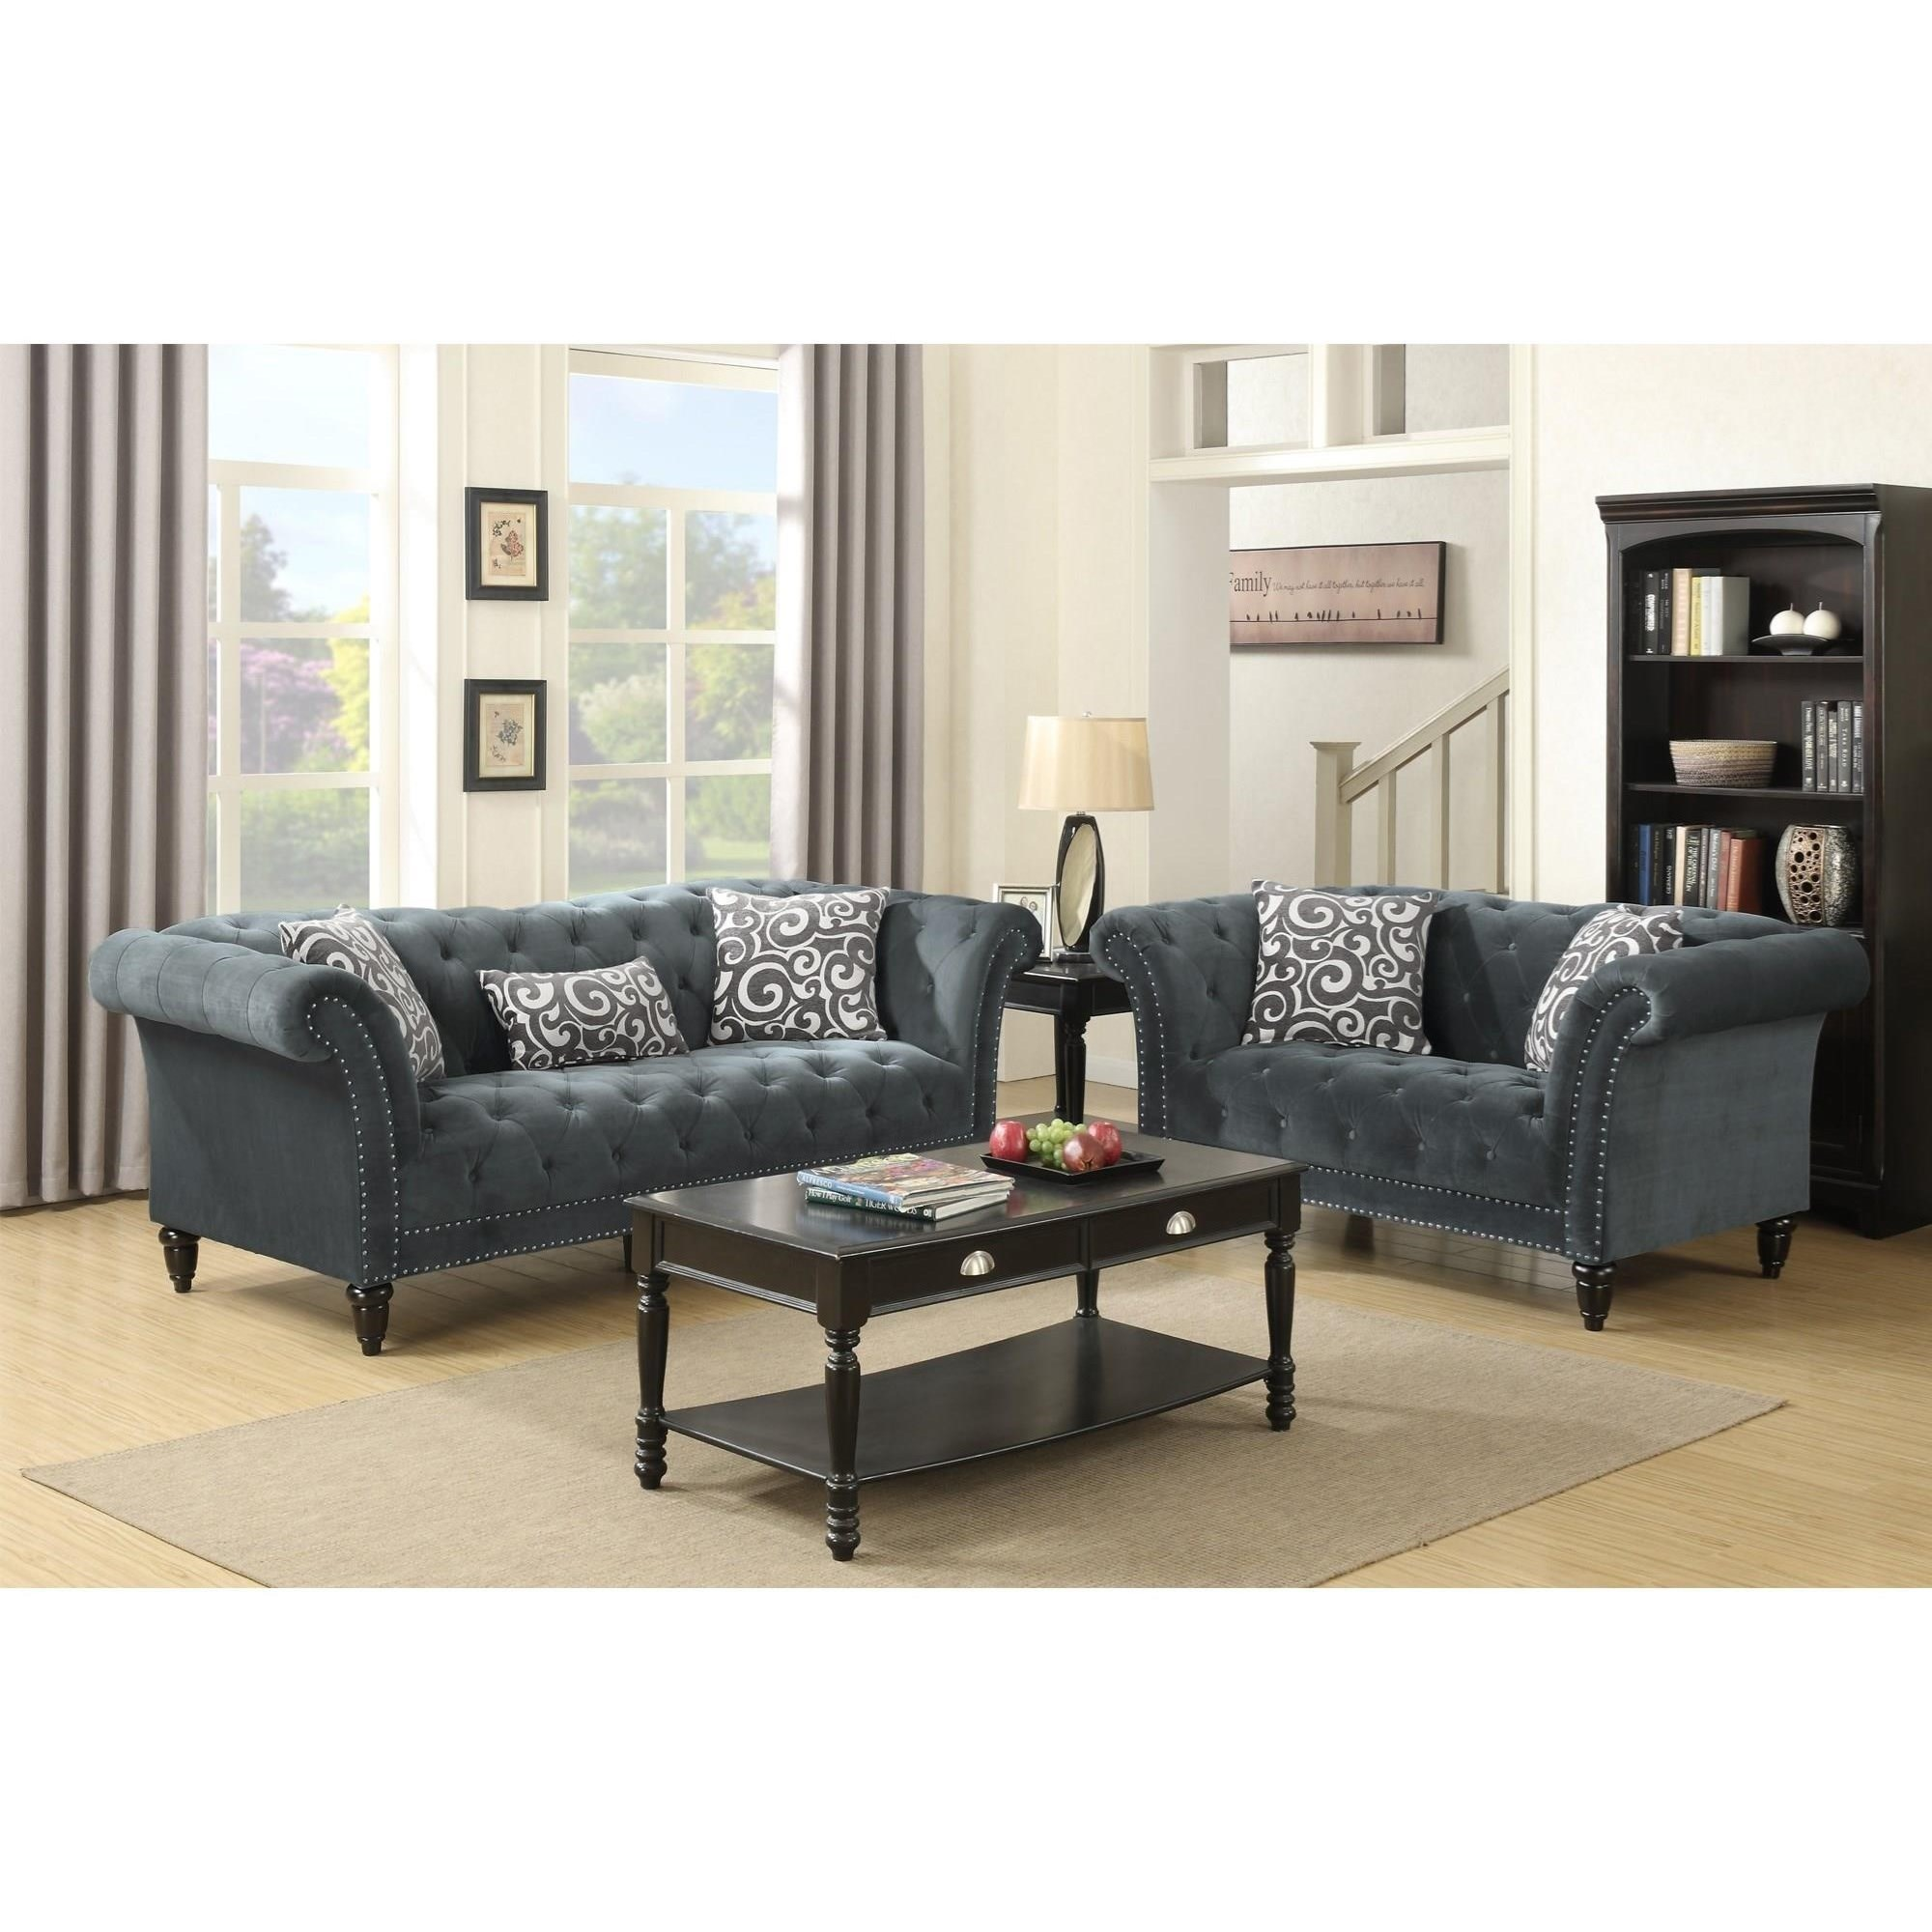 Twain Sofa & Loveseat Set by Elements International at Wilcox Furniture